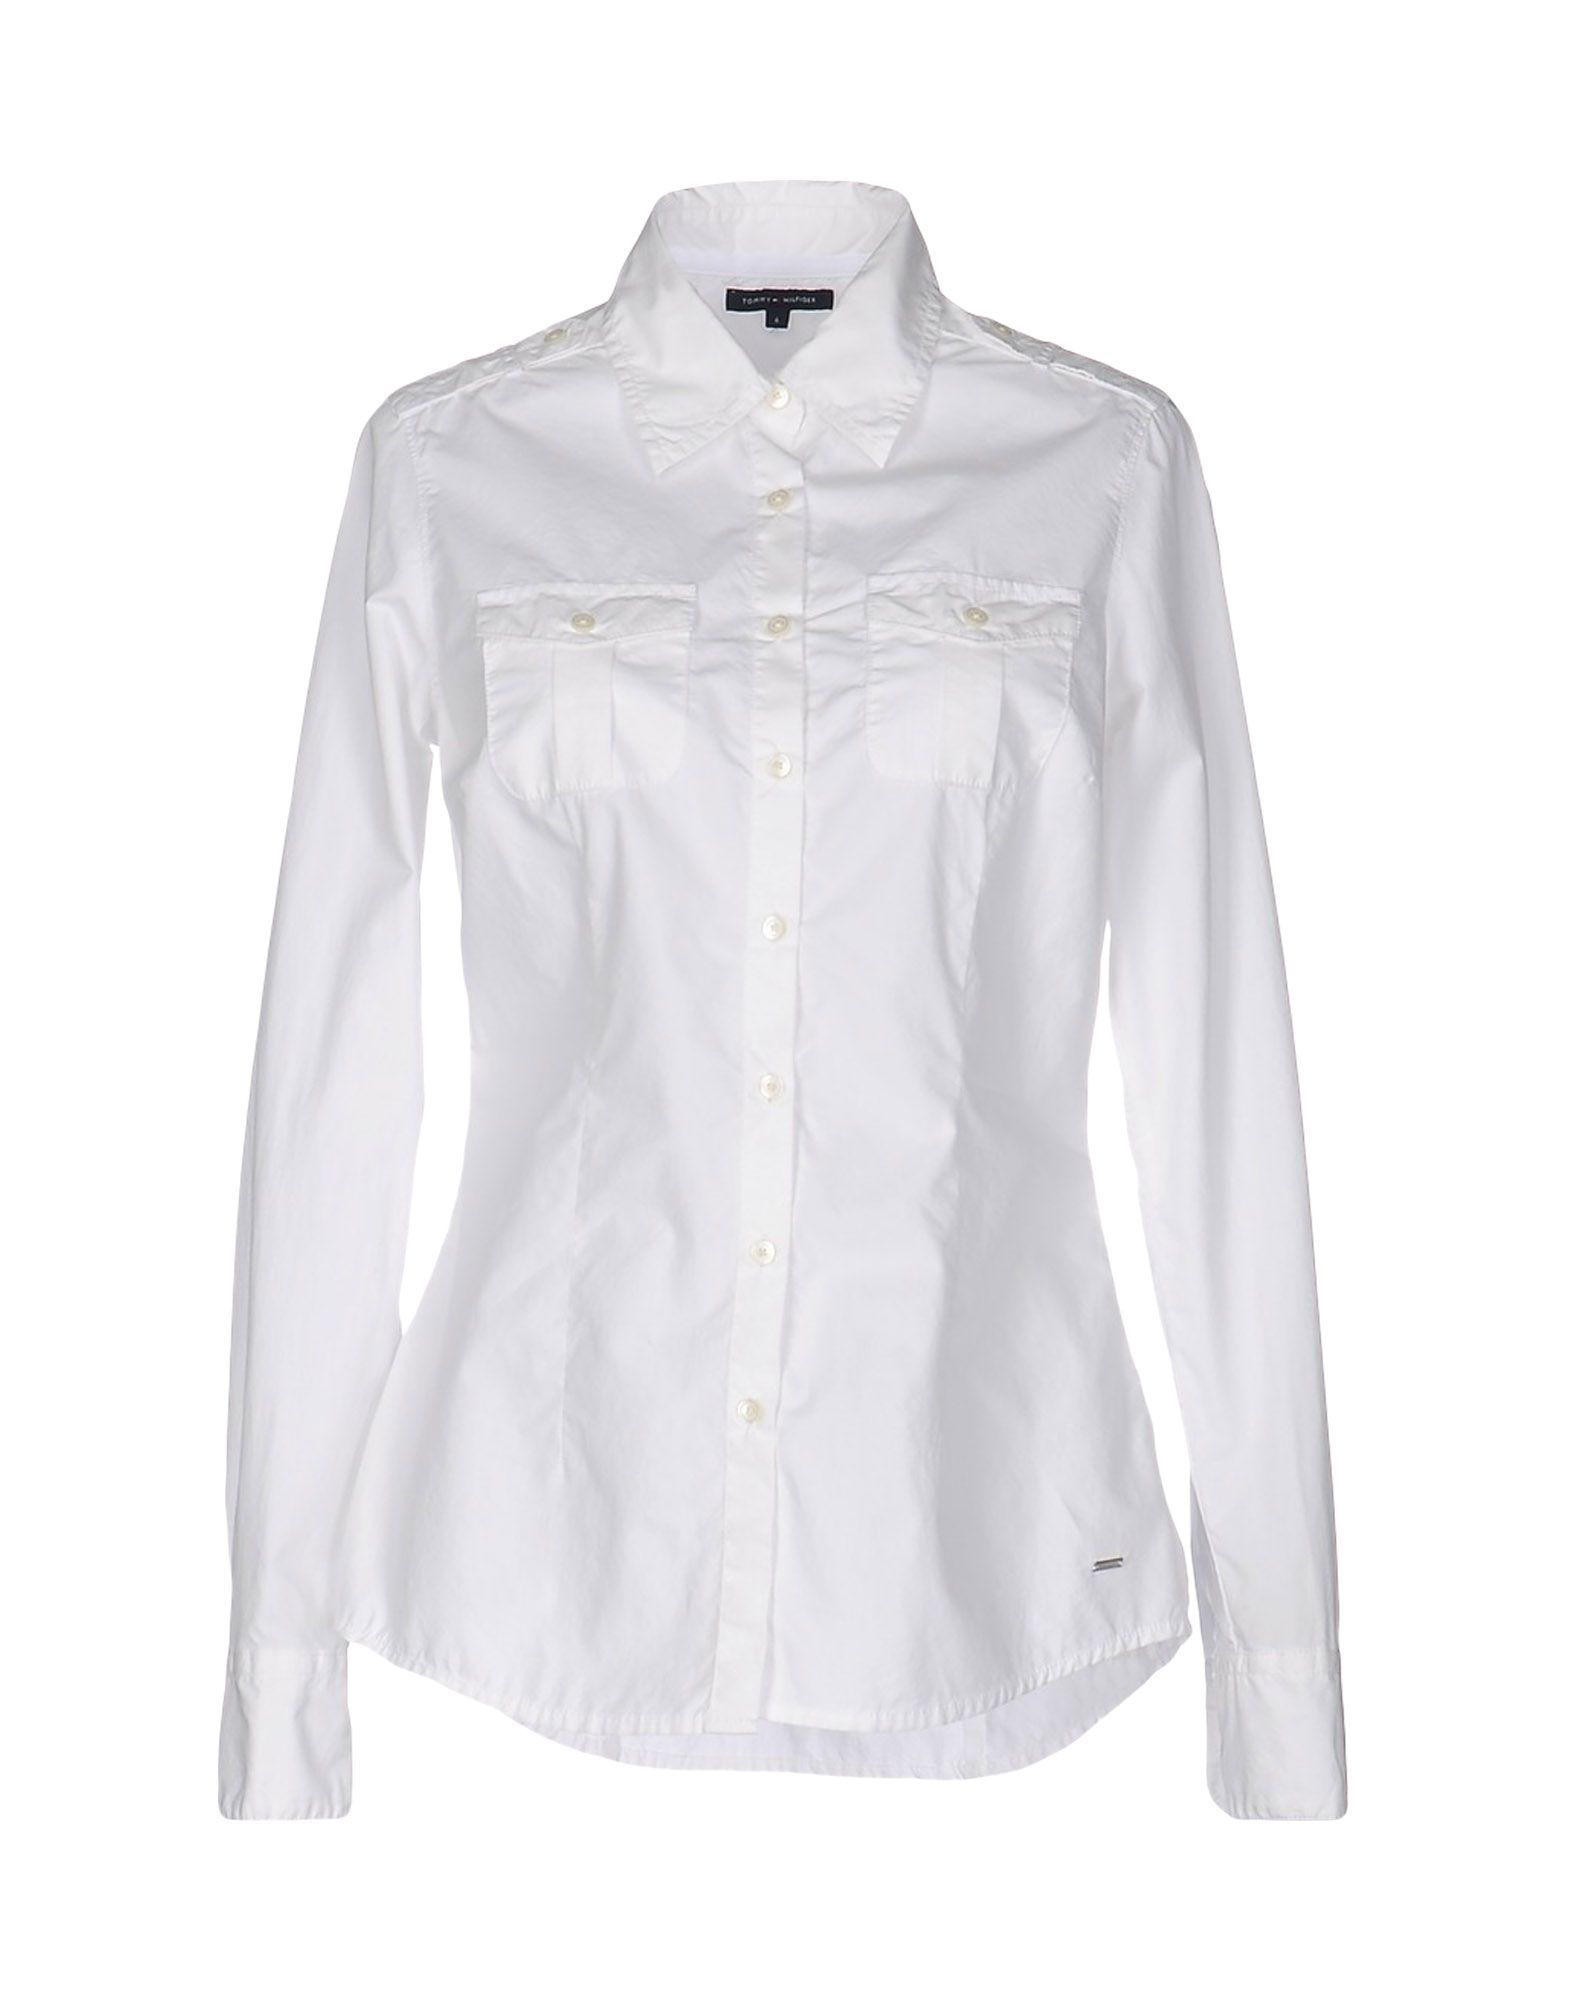 a7c41724 womens tommy hilfiger shirts | fashion in 2019 | Shirts, Shirt ...